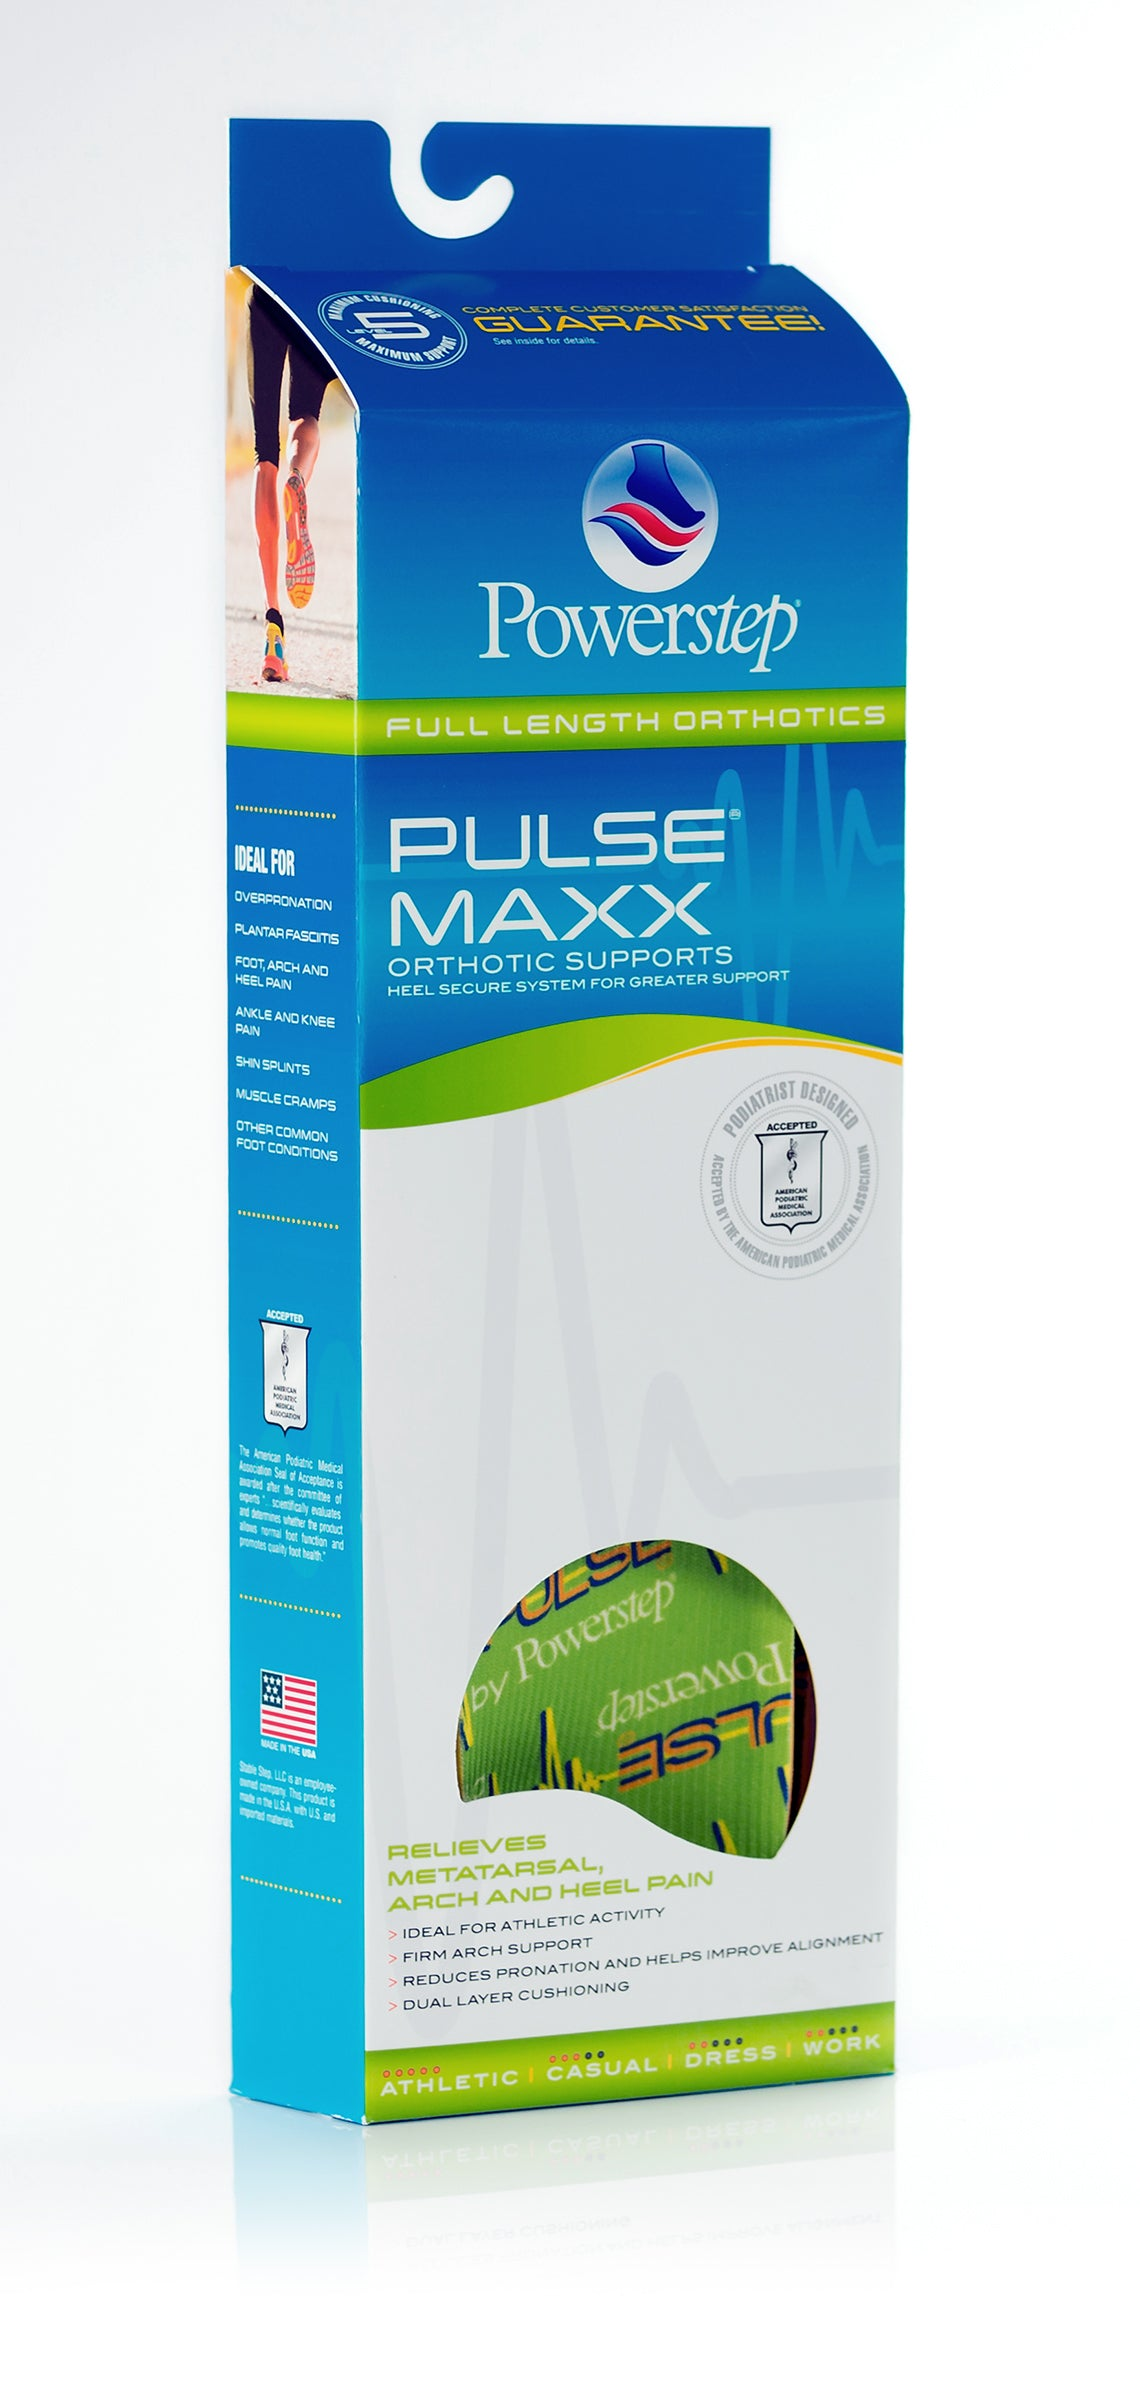 'Powerstep' 5037-01 - Pulse Maxx